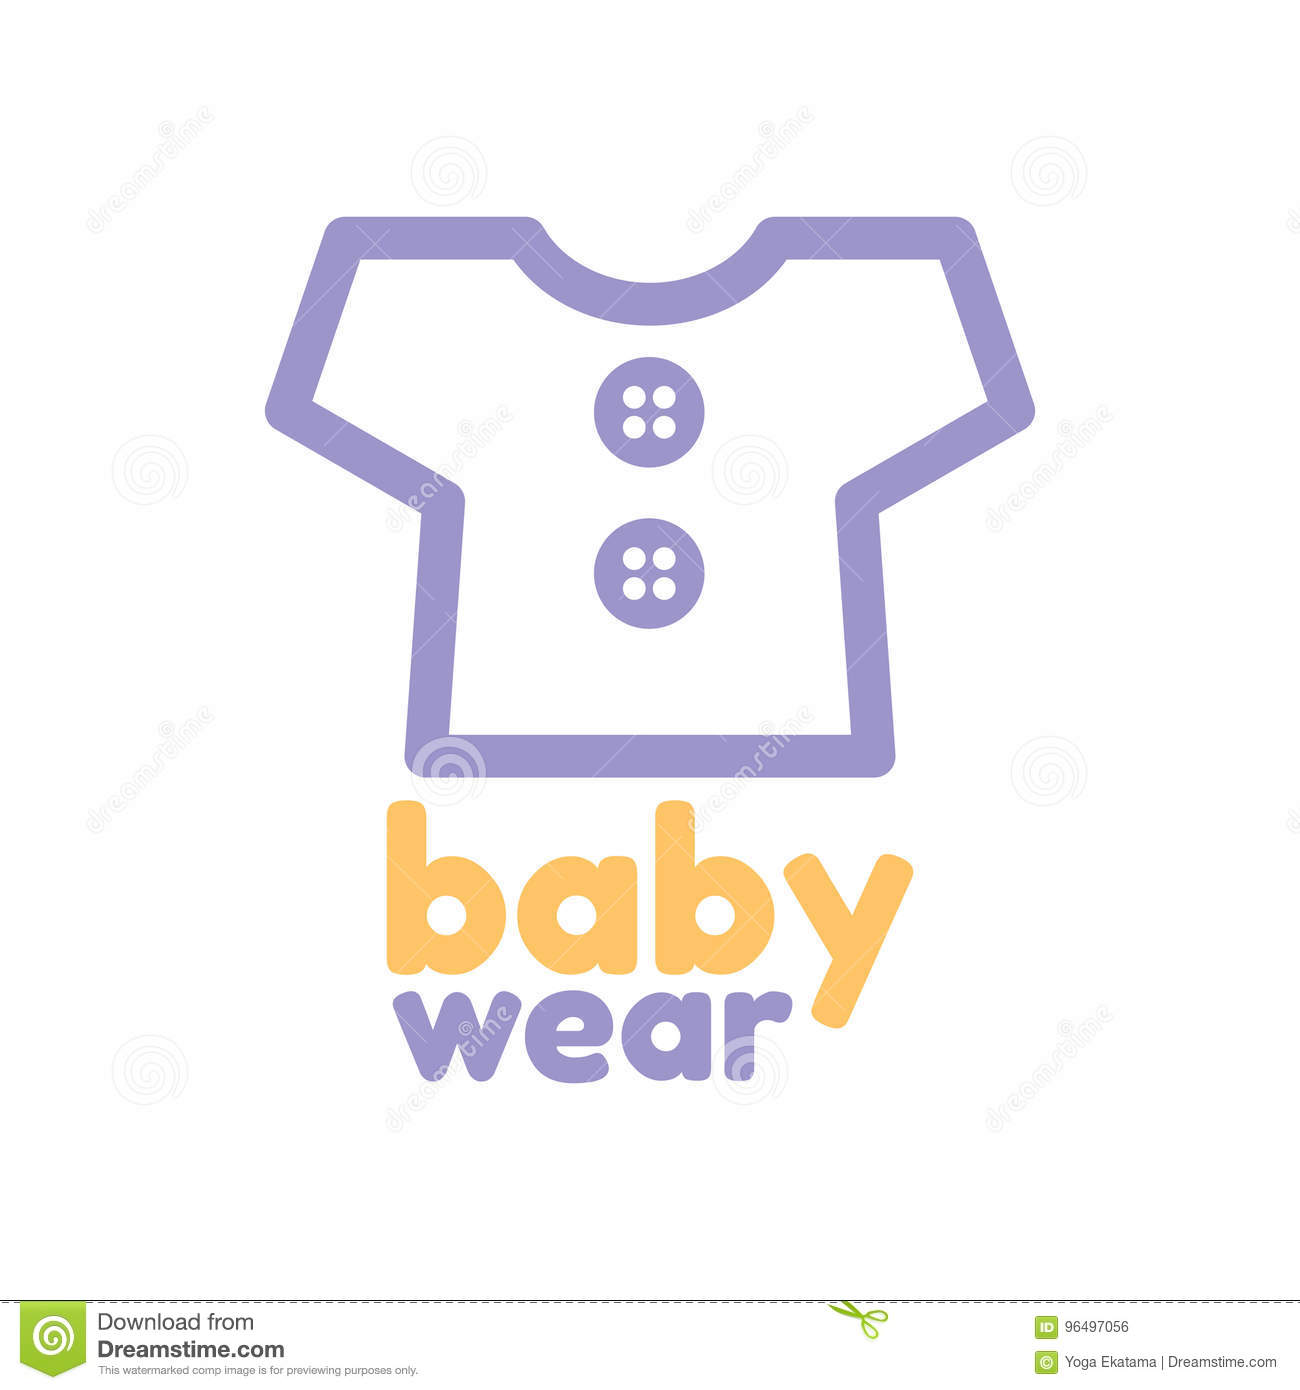 Baby Wear Logo Template Stock Vector Illustration Of People 96497056